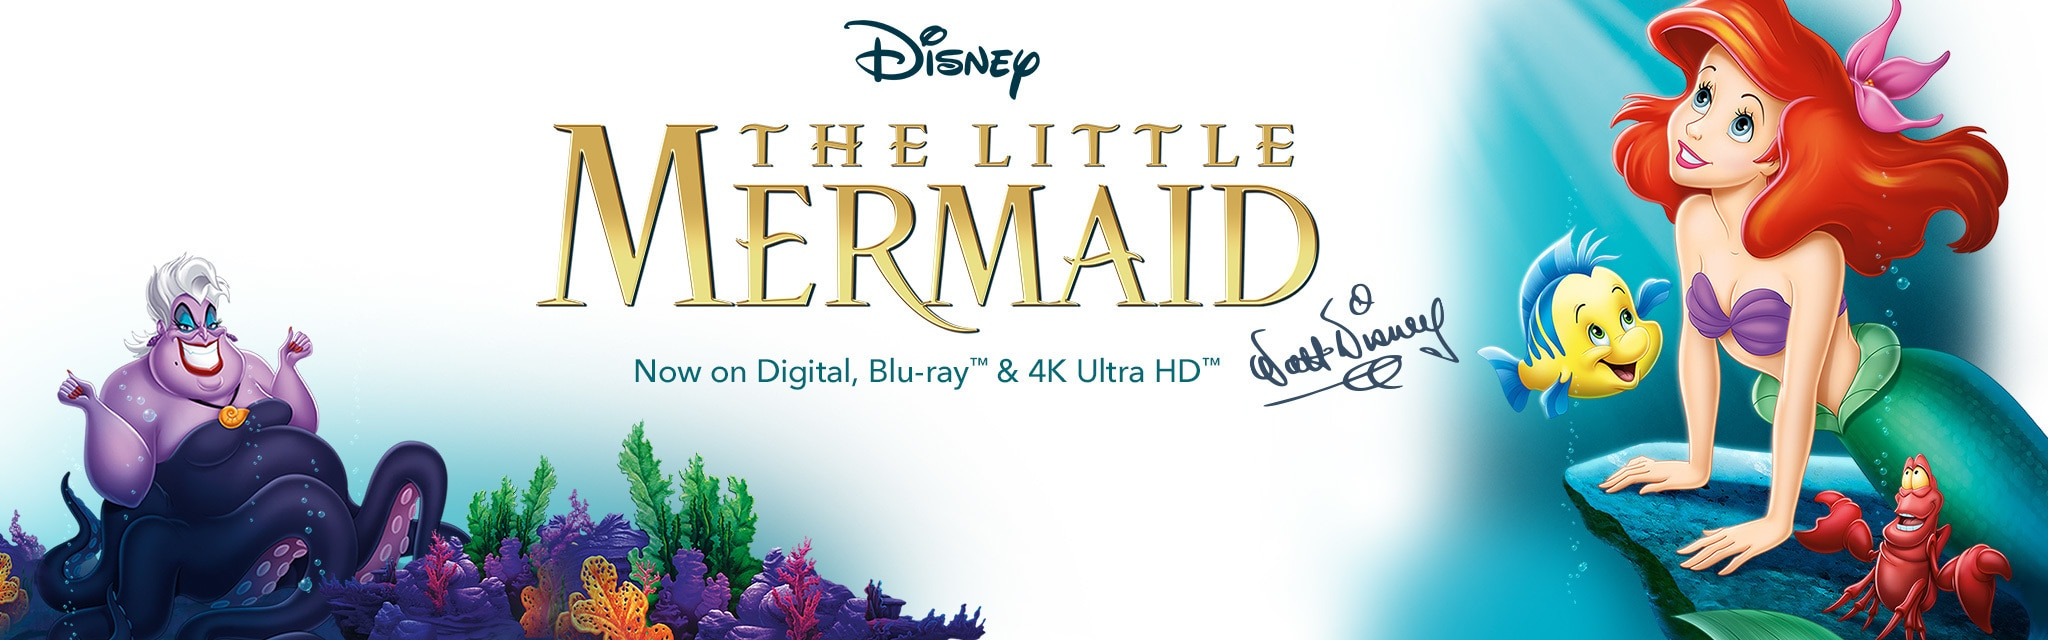 The Little Mermaid - Now on Digital, Blu-ray & 4K Ultra HD